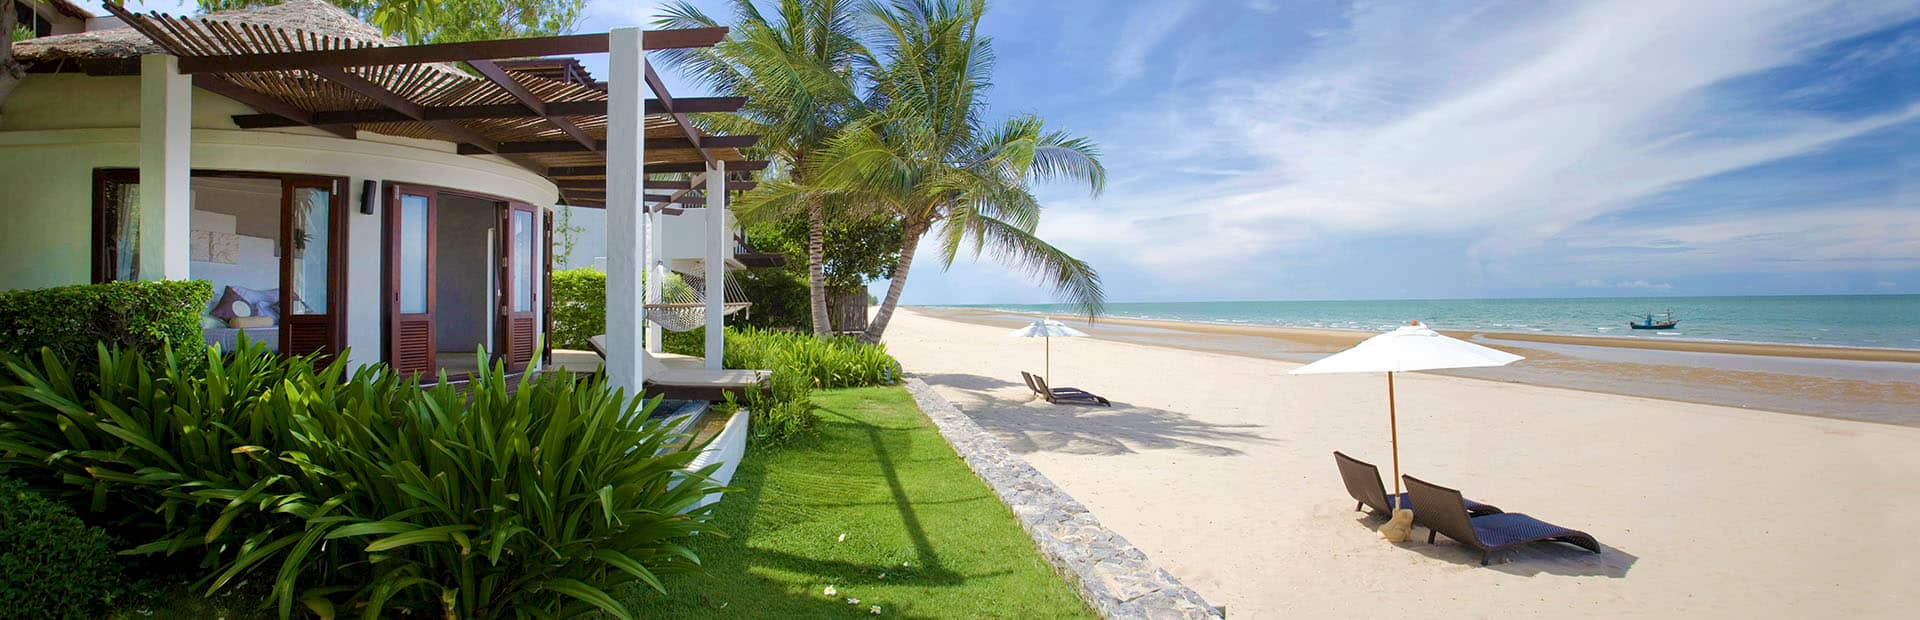 Luxury Beach Resorts in Thailand - Aleenta Phuket Resort & Spa